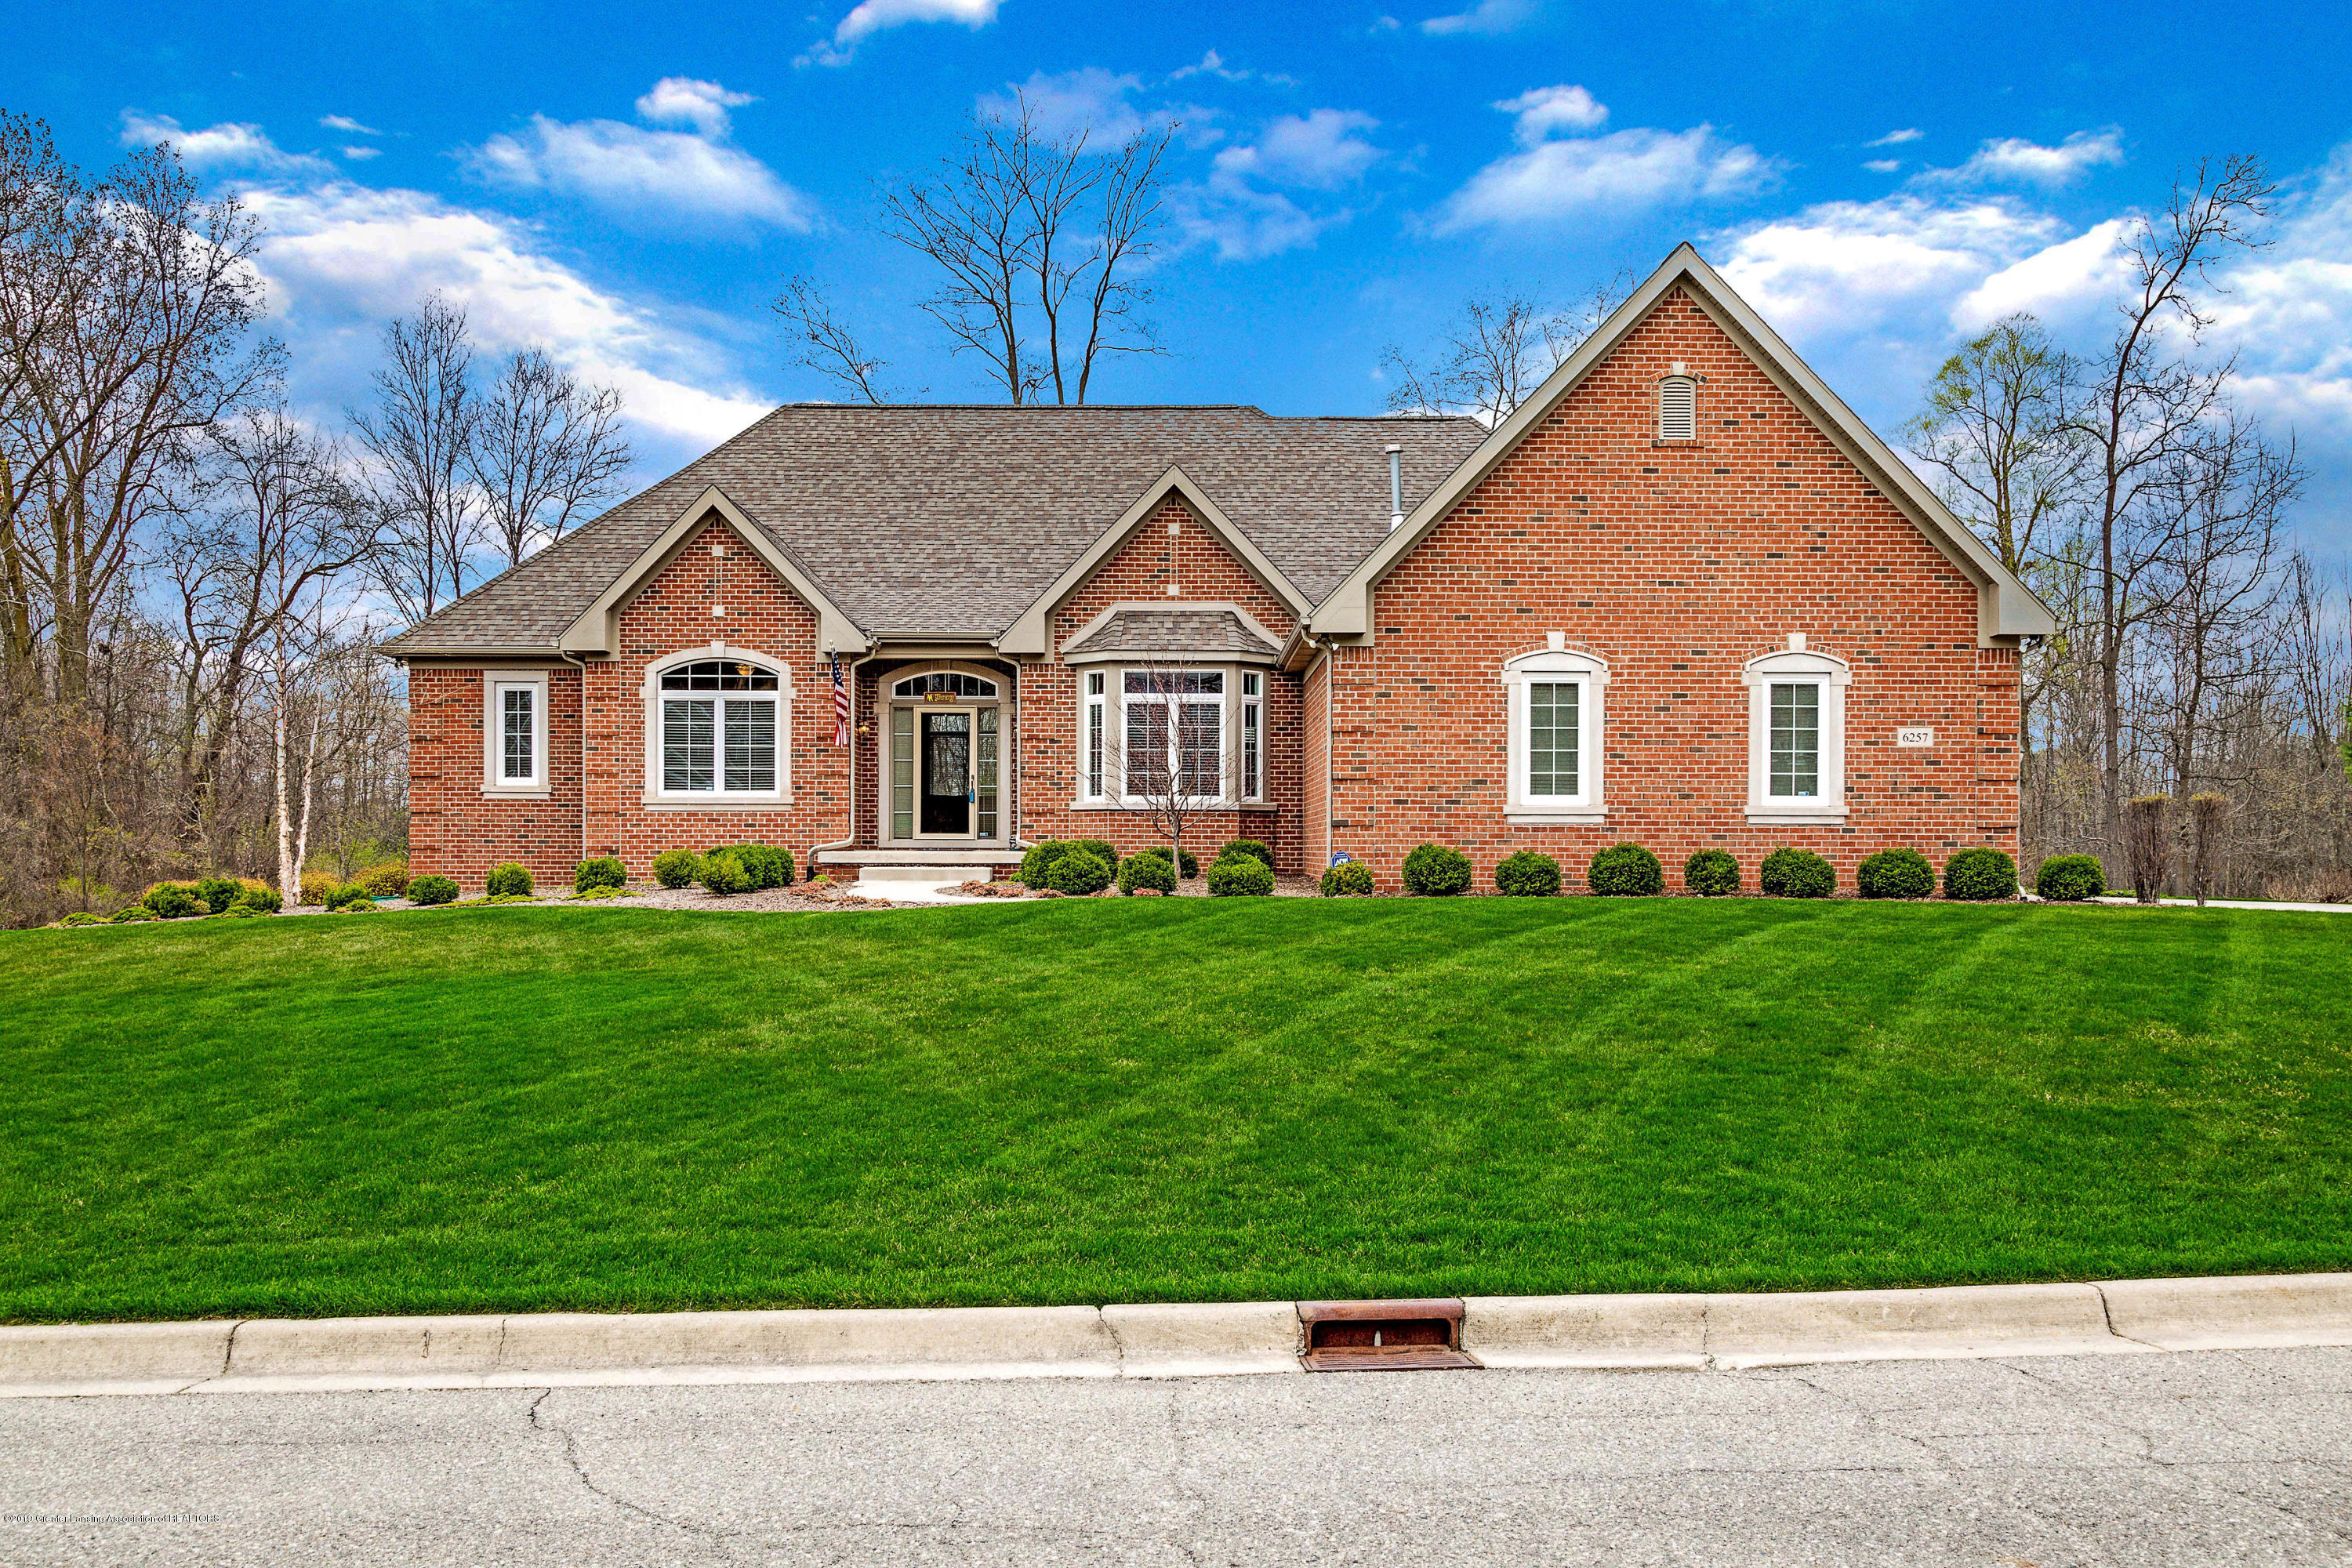 6257 Mereford Ct - 20190426-E3 - 1